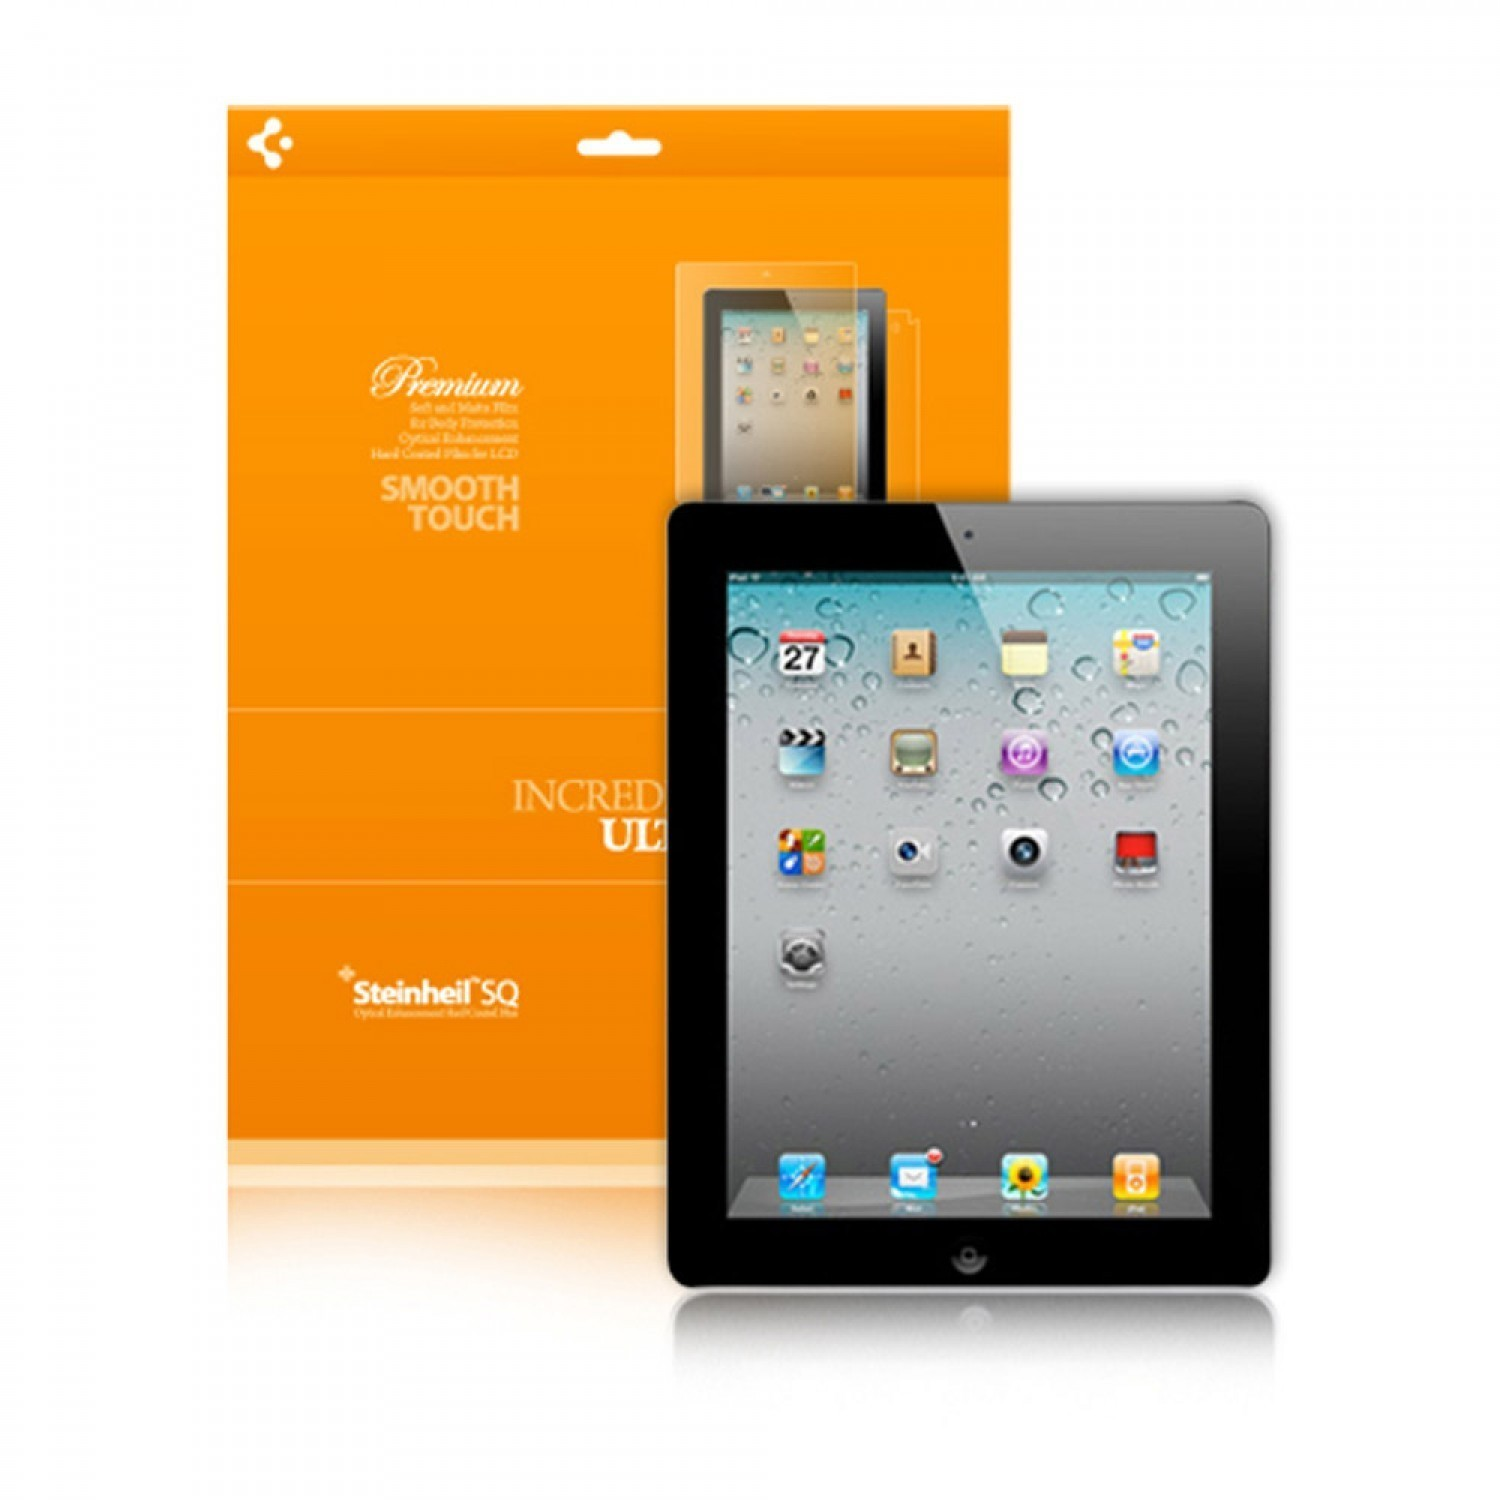 Spigen Incredible Shield iPad 2 Full Body Protector Ultra Matte